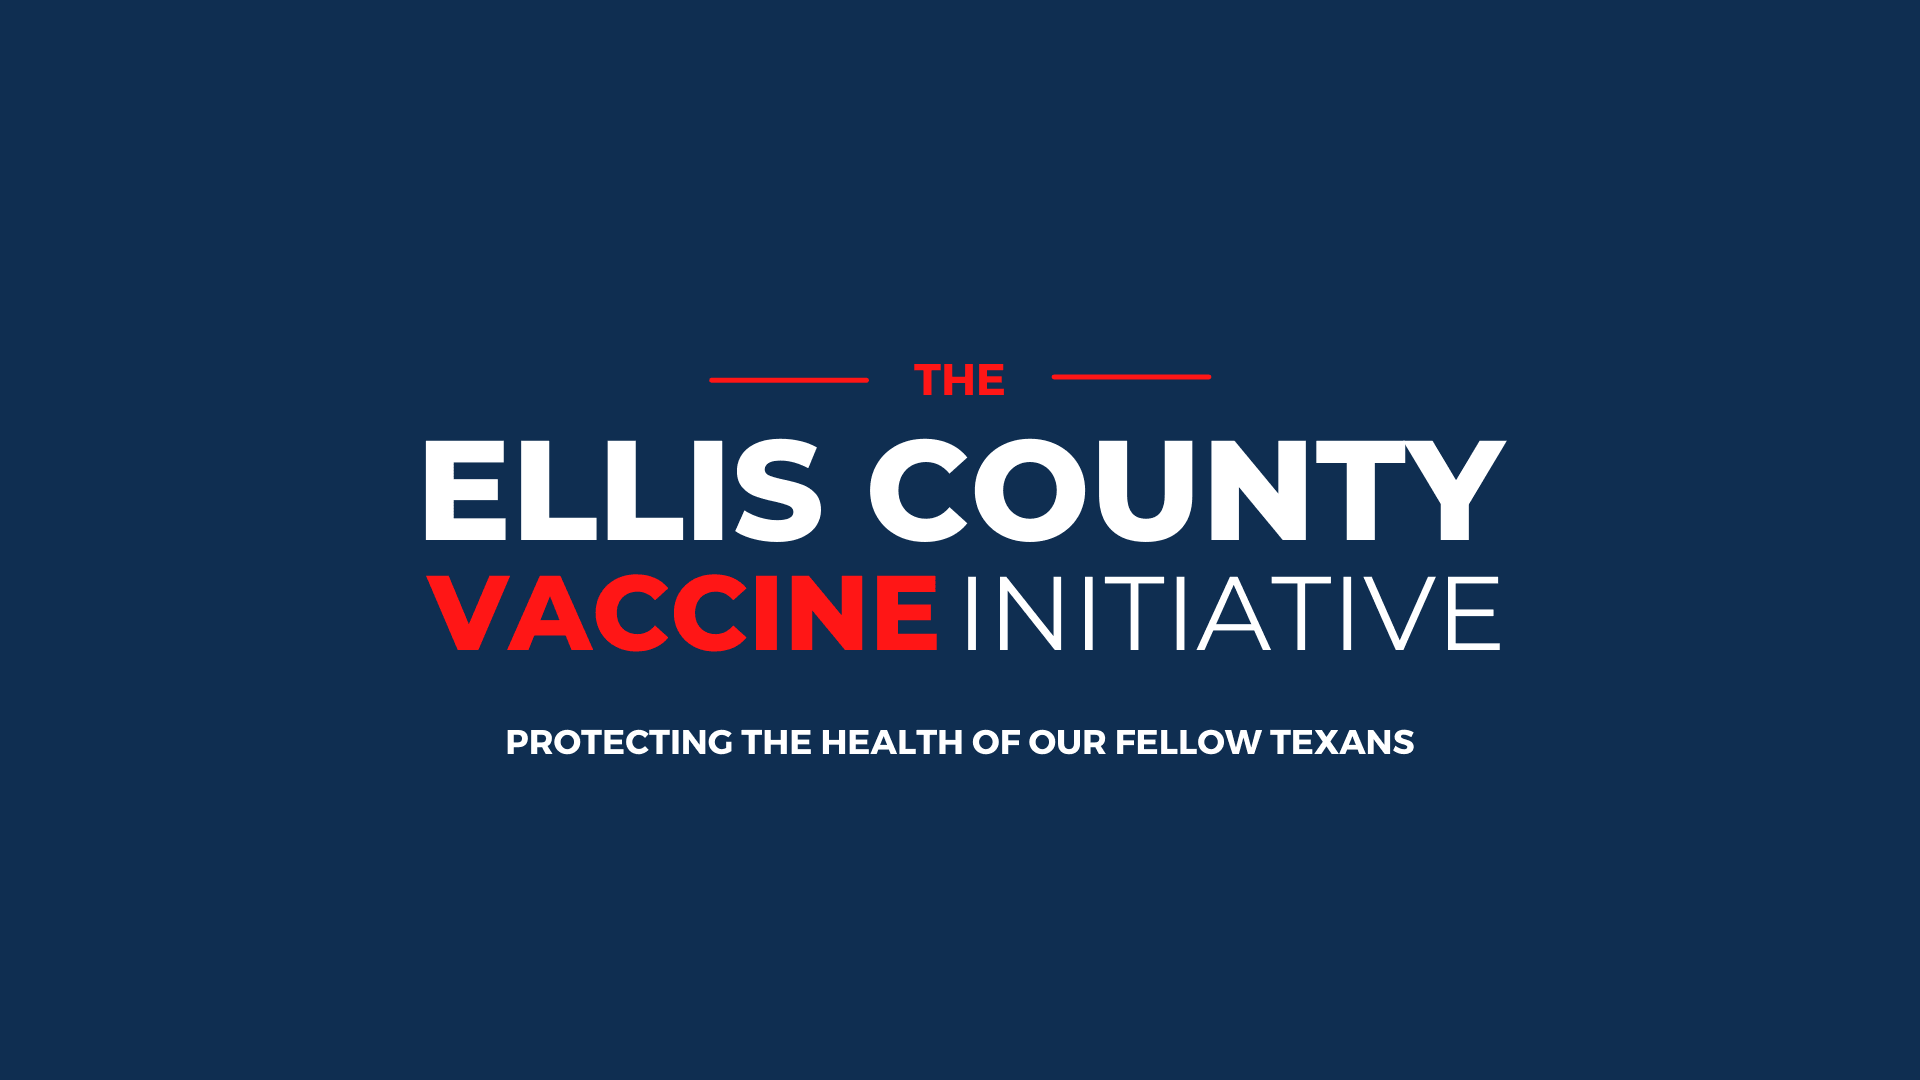 The Ellis County vaccine Initiative (Main Photo)